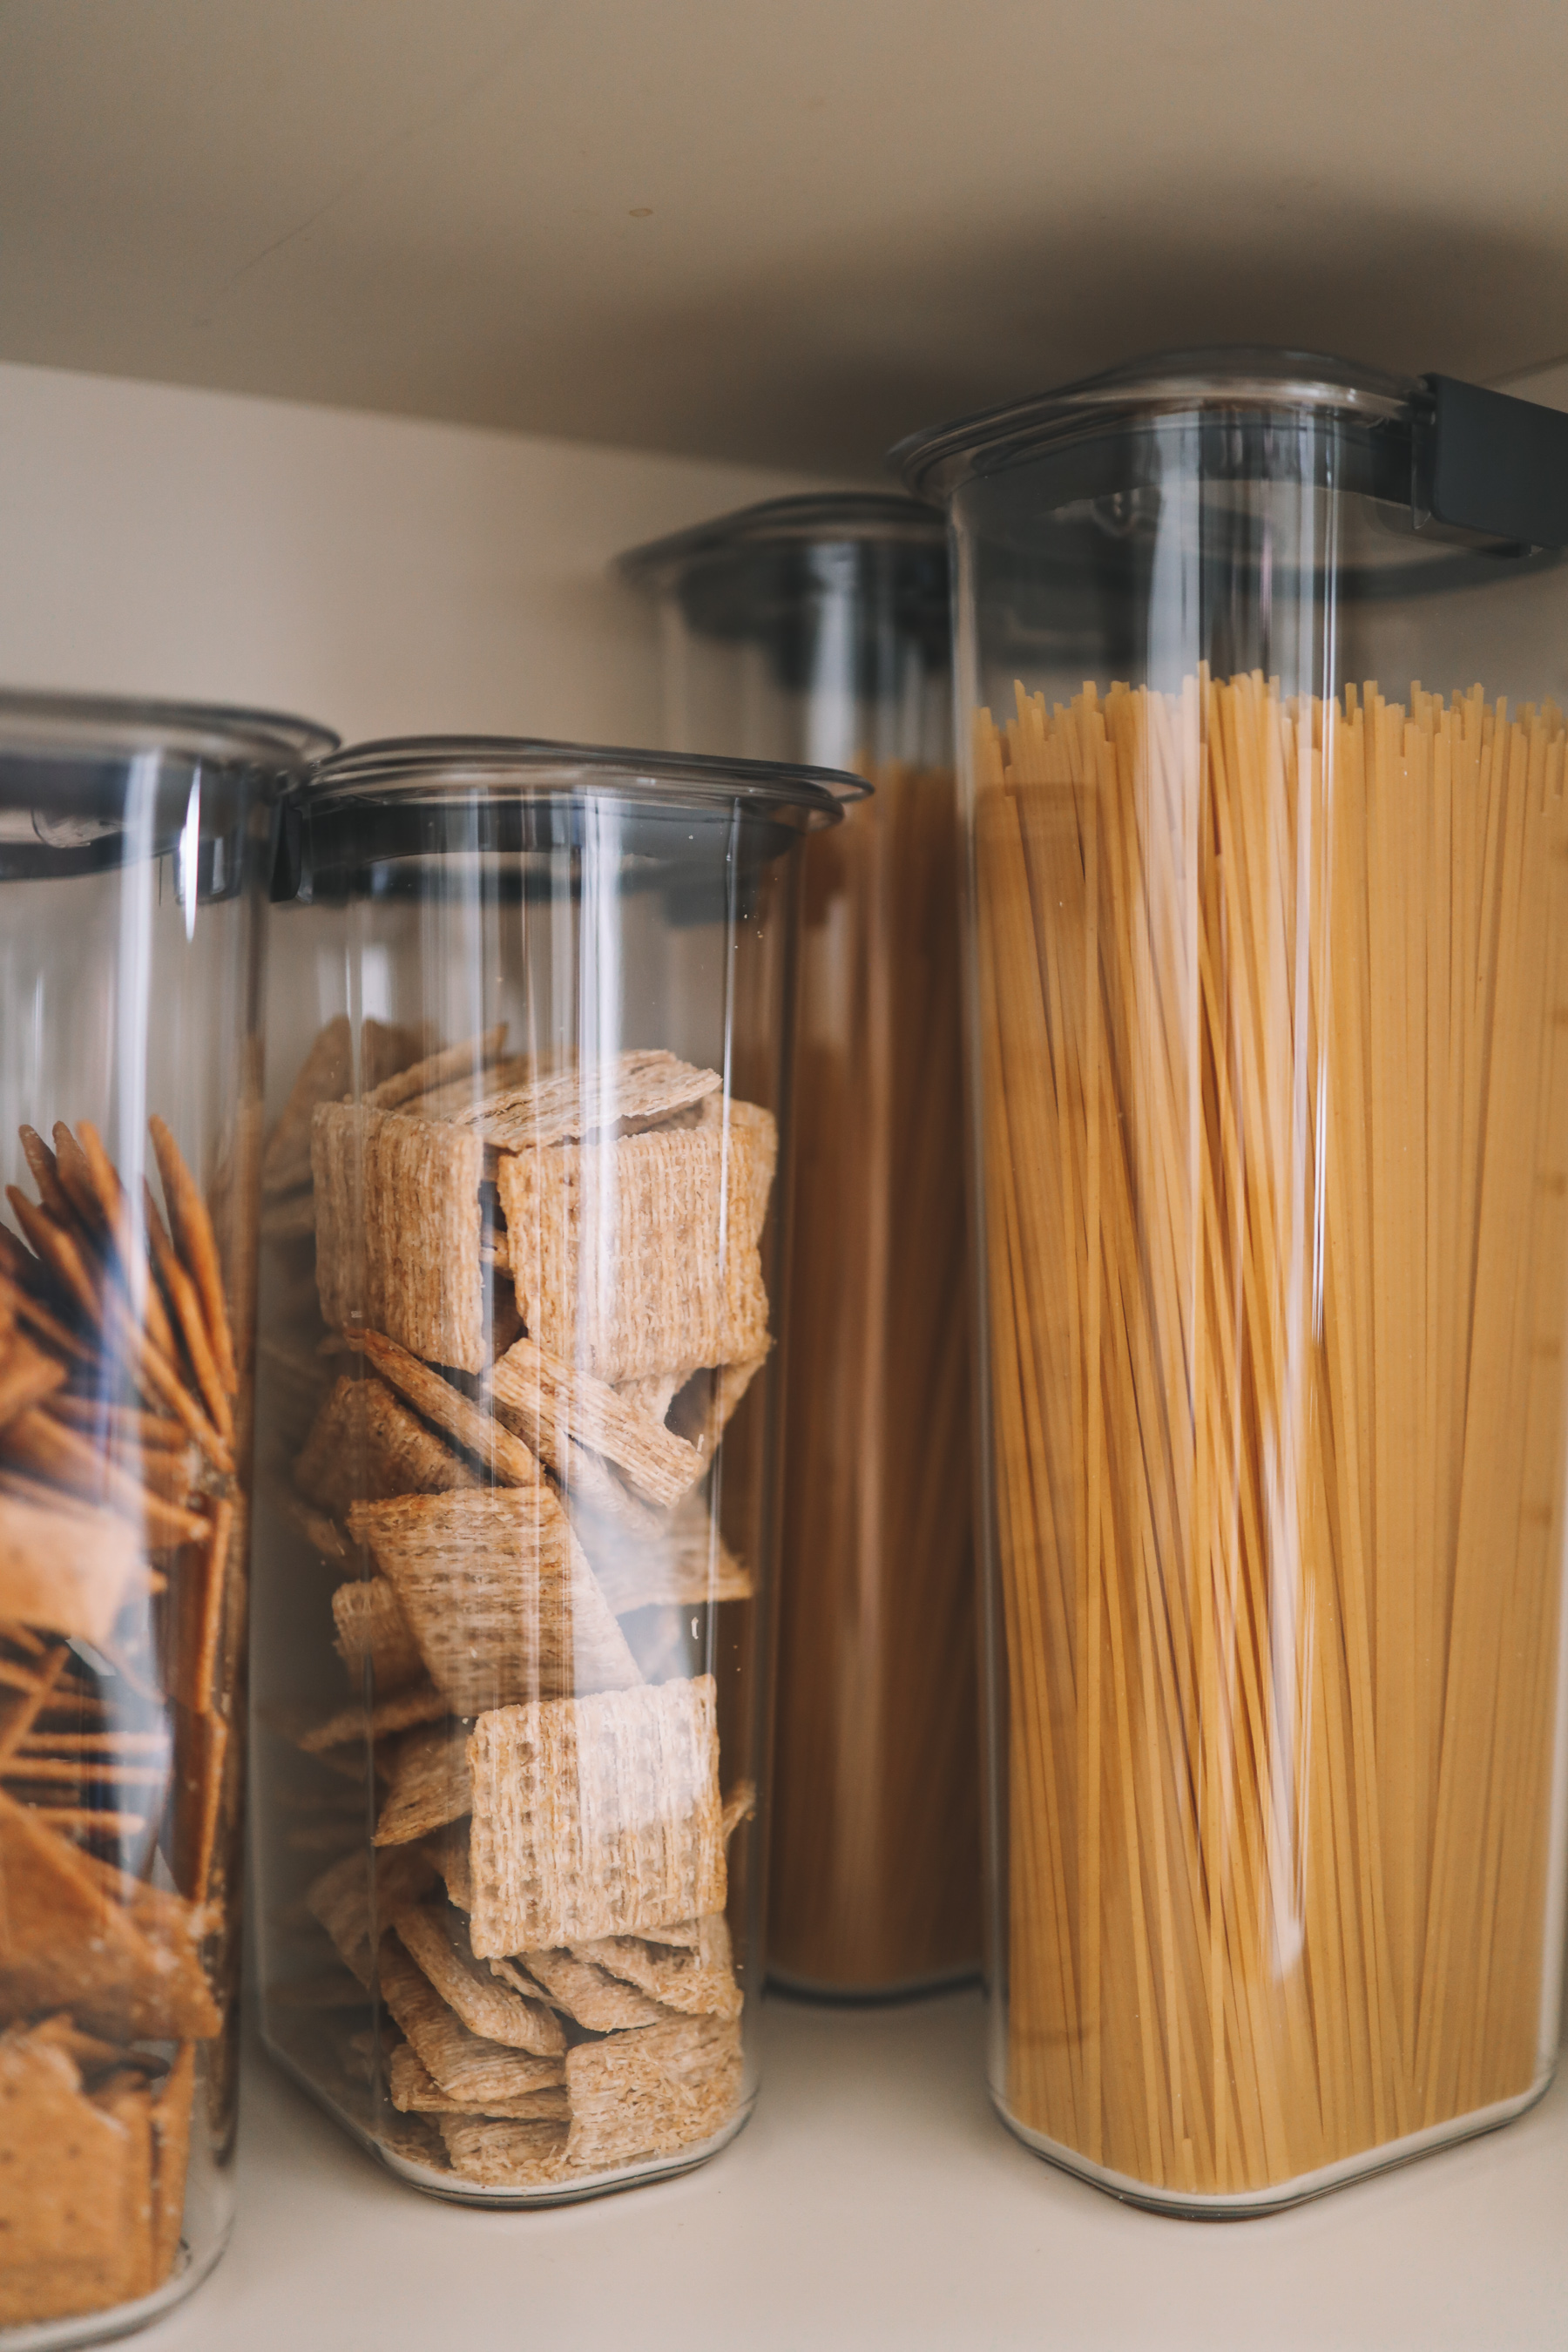 Rubbermaid Affordable Pantry Organization